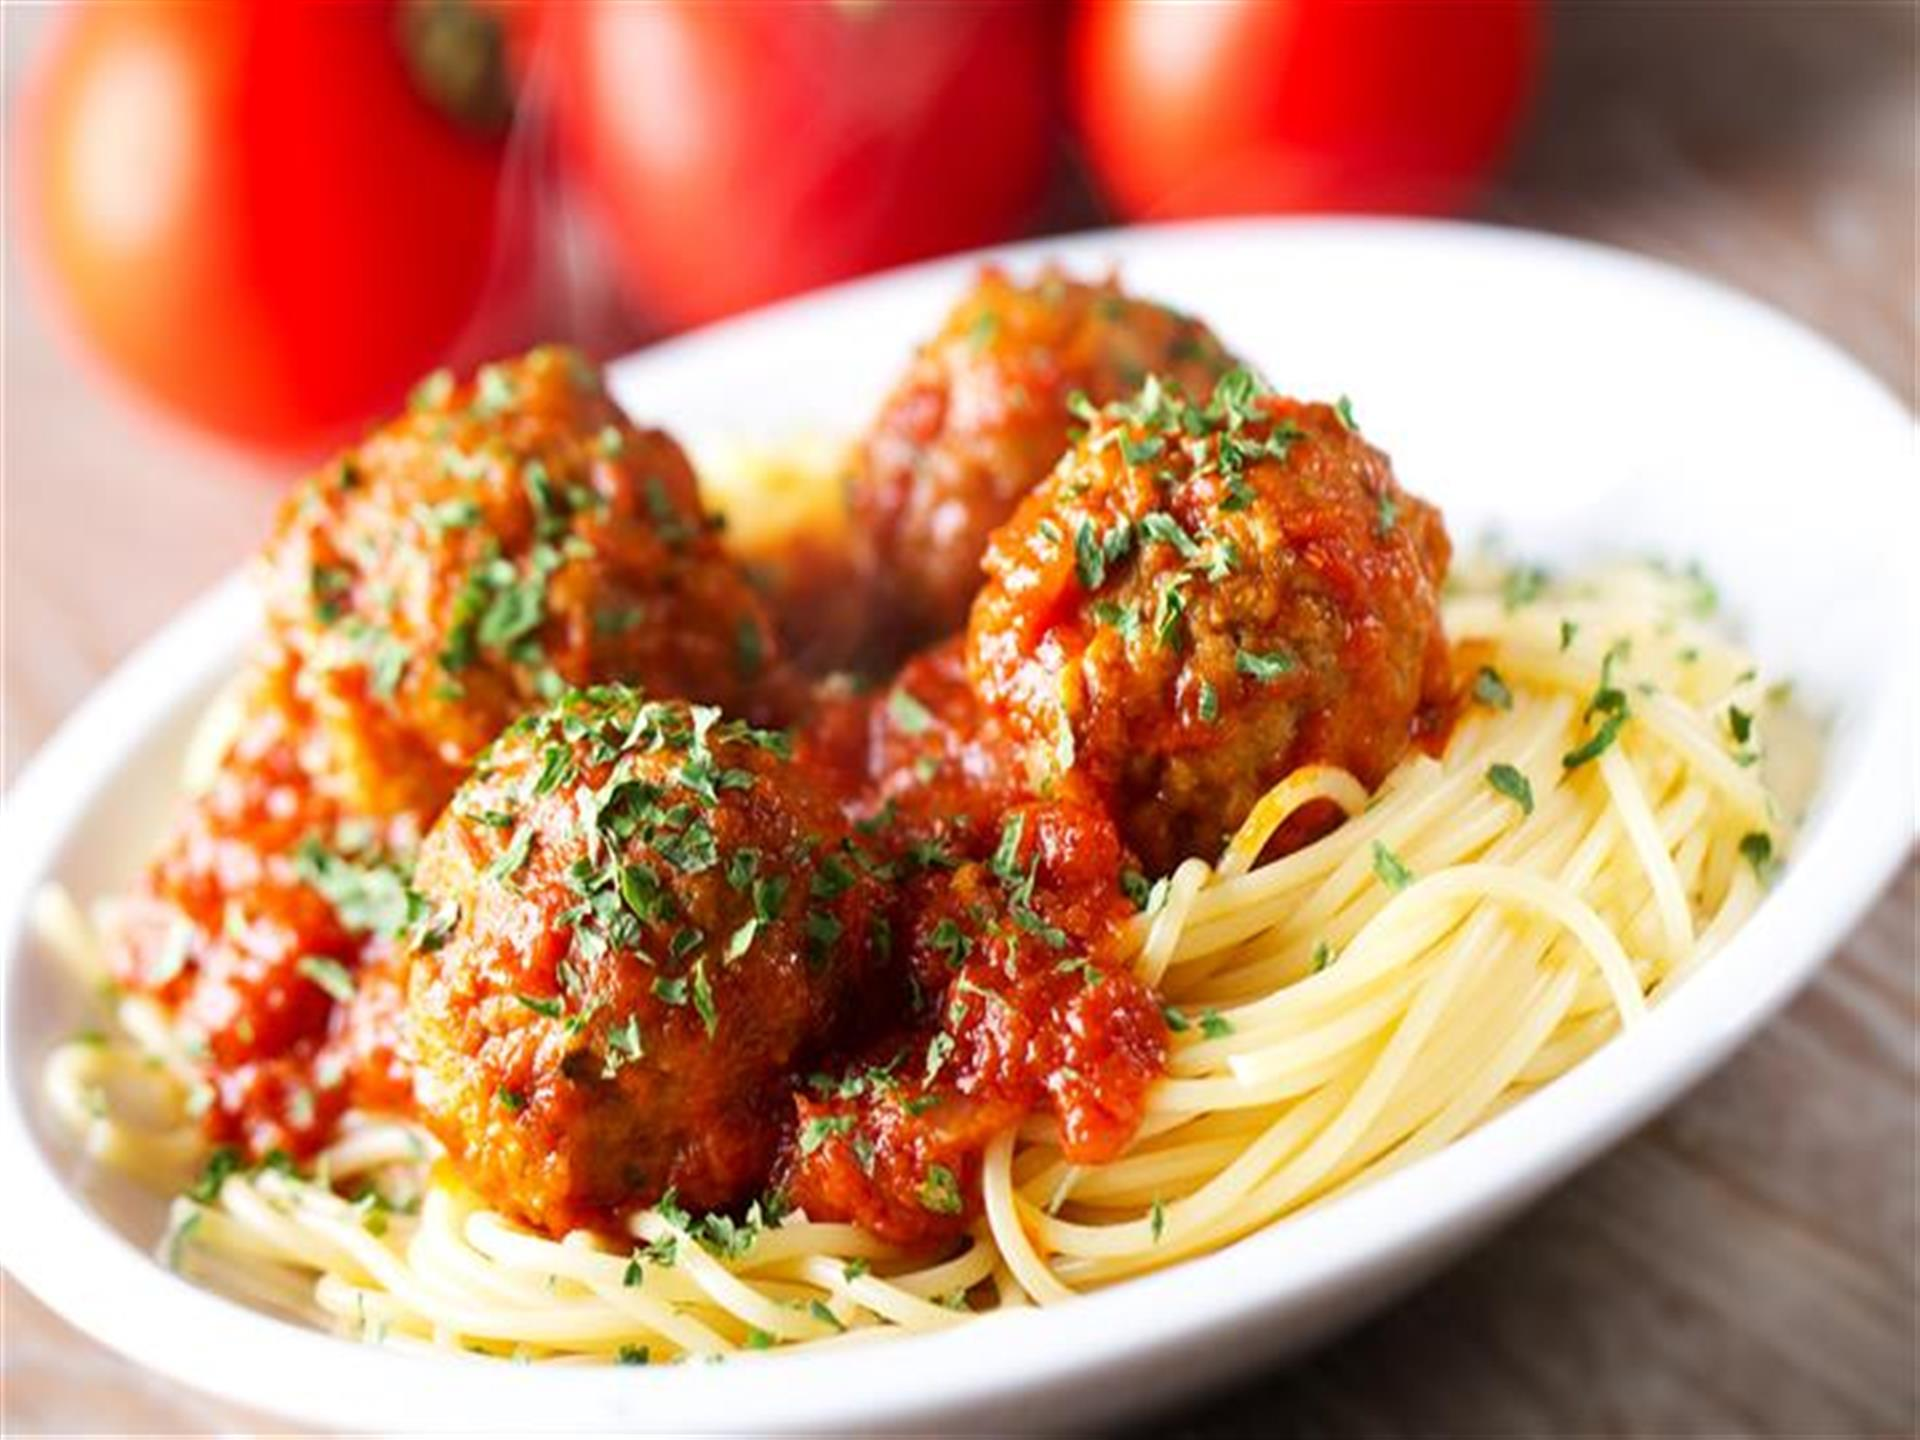 Spaghetti and meatballs with whole tomatoes in background